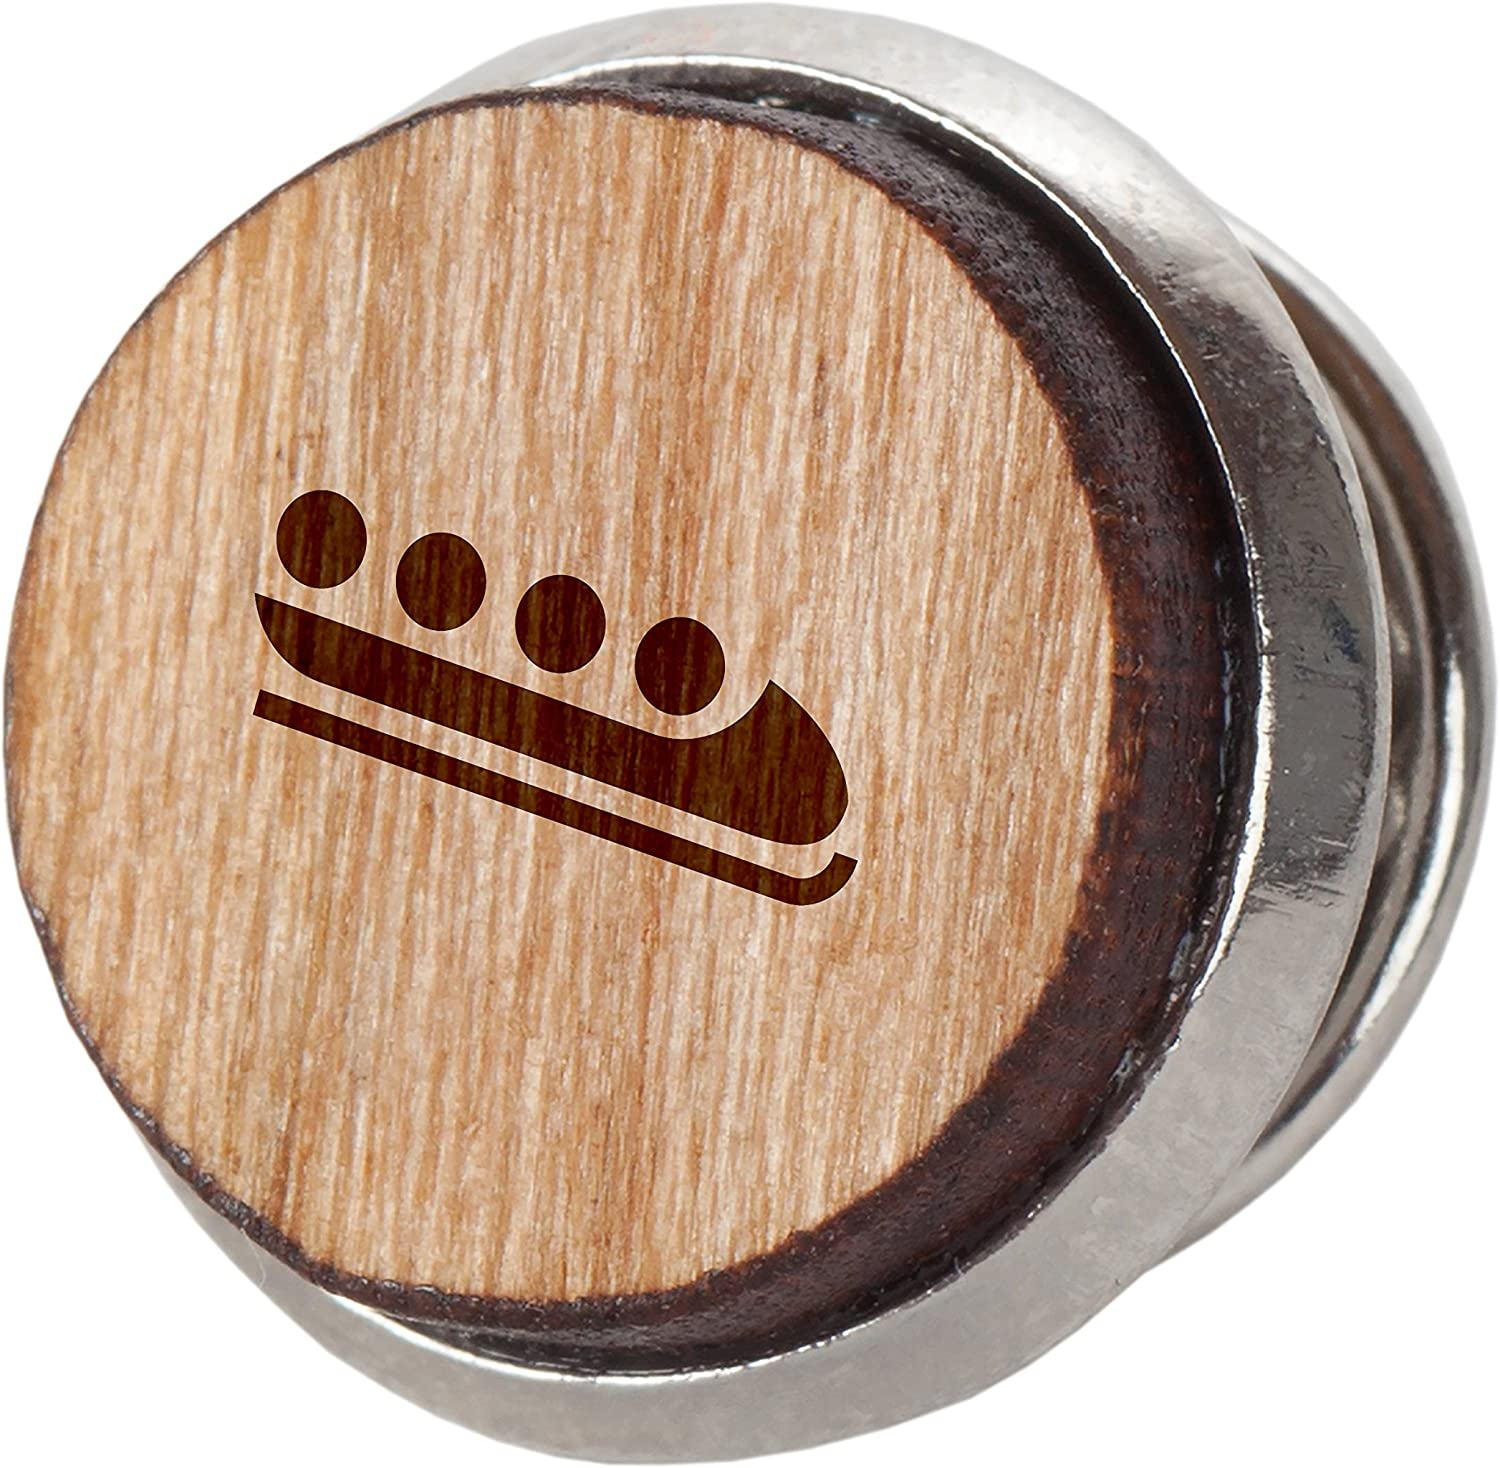 Bobsled Stylish Cherry Wood Tie Tack 12Mm Simple Tie Clip with Laser Engraved Design Engraved Tie Tack Gift